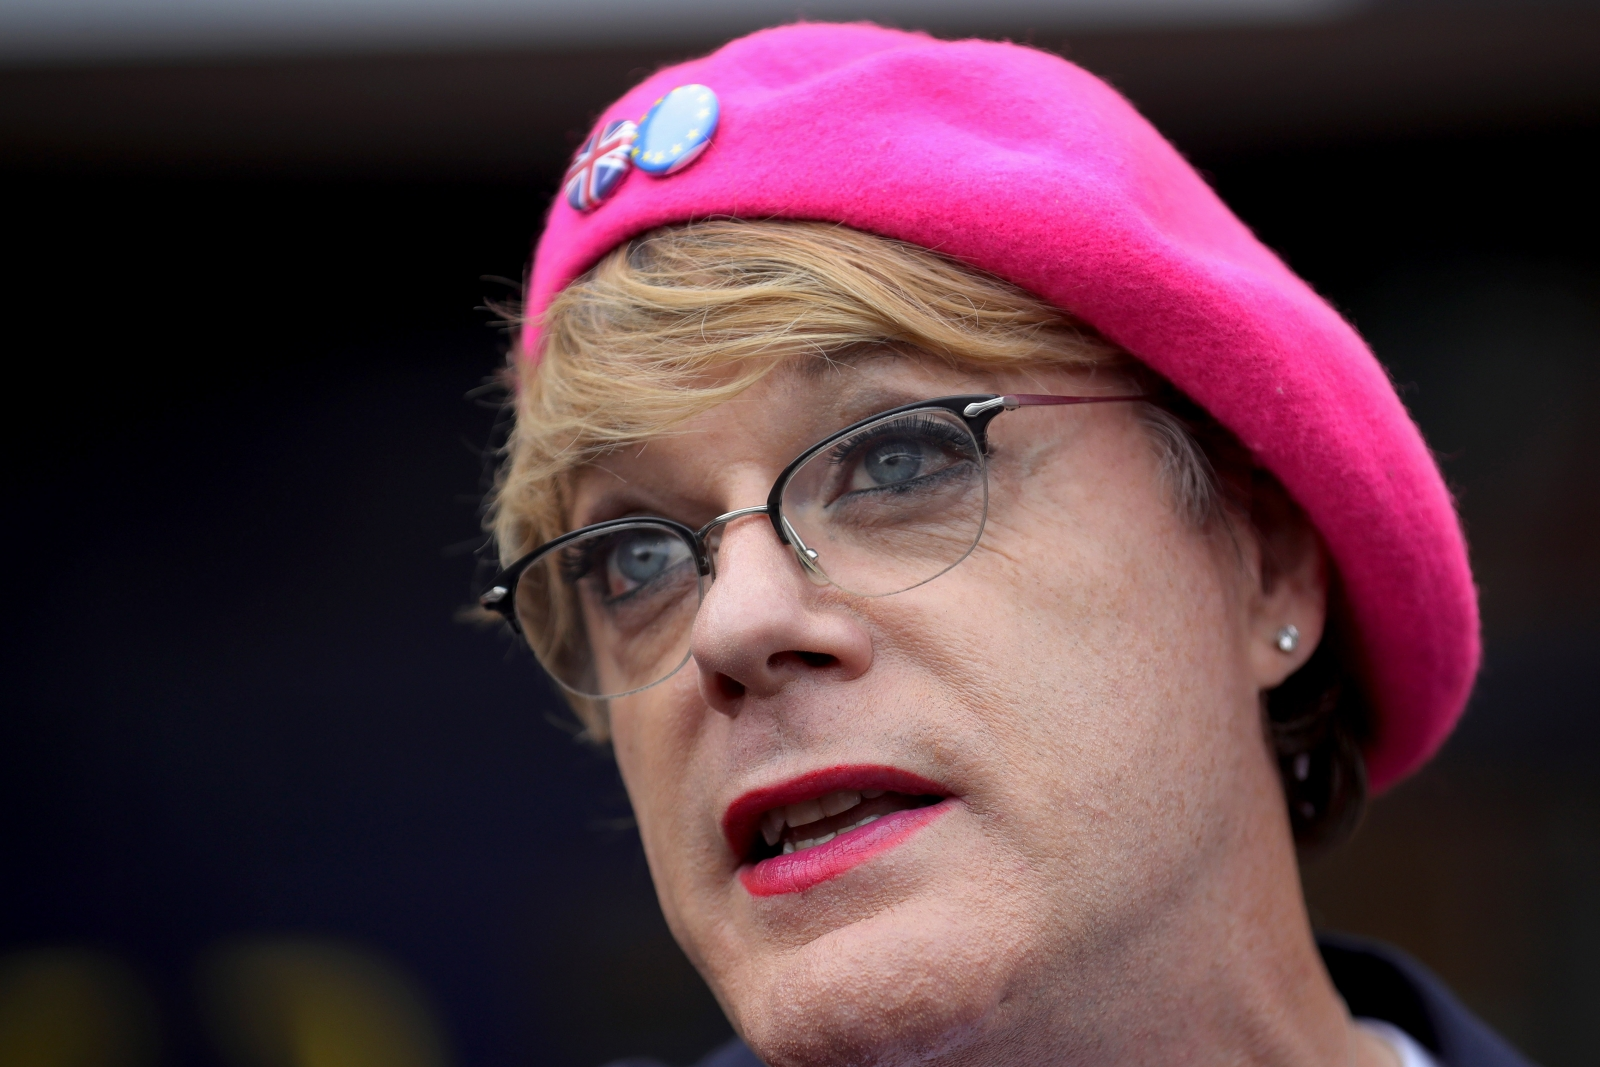 Man Fined For Stealing Eddie Izzard S Pink Beret At Pro Eu